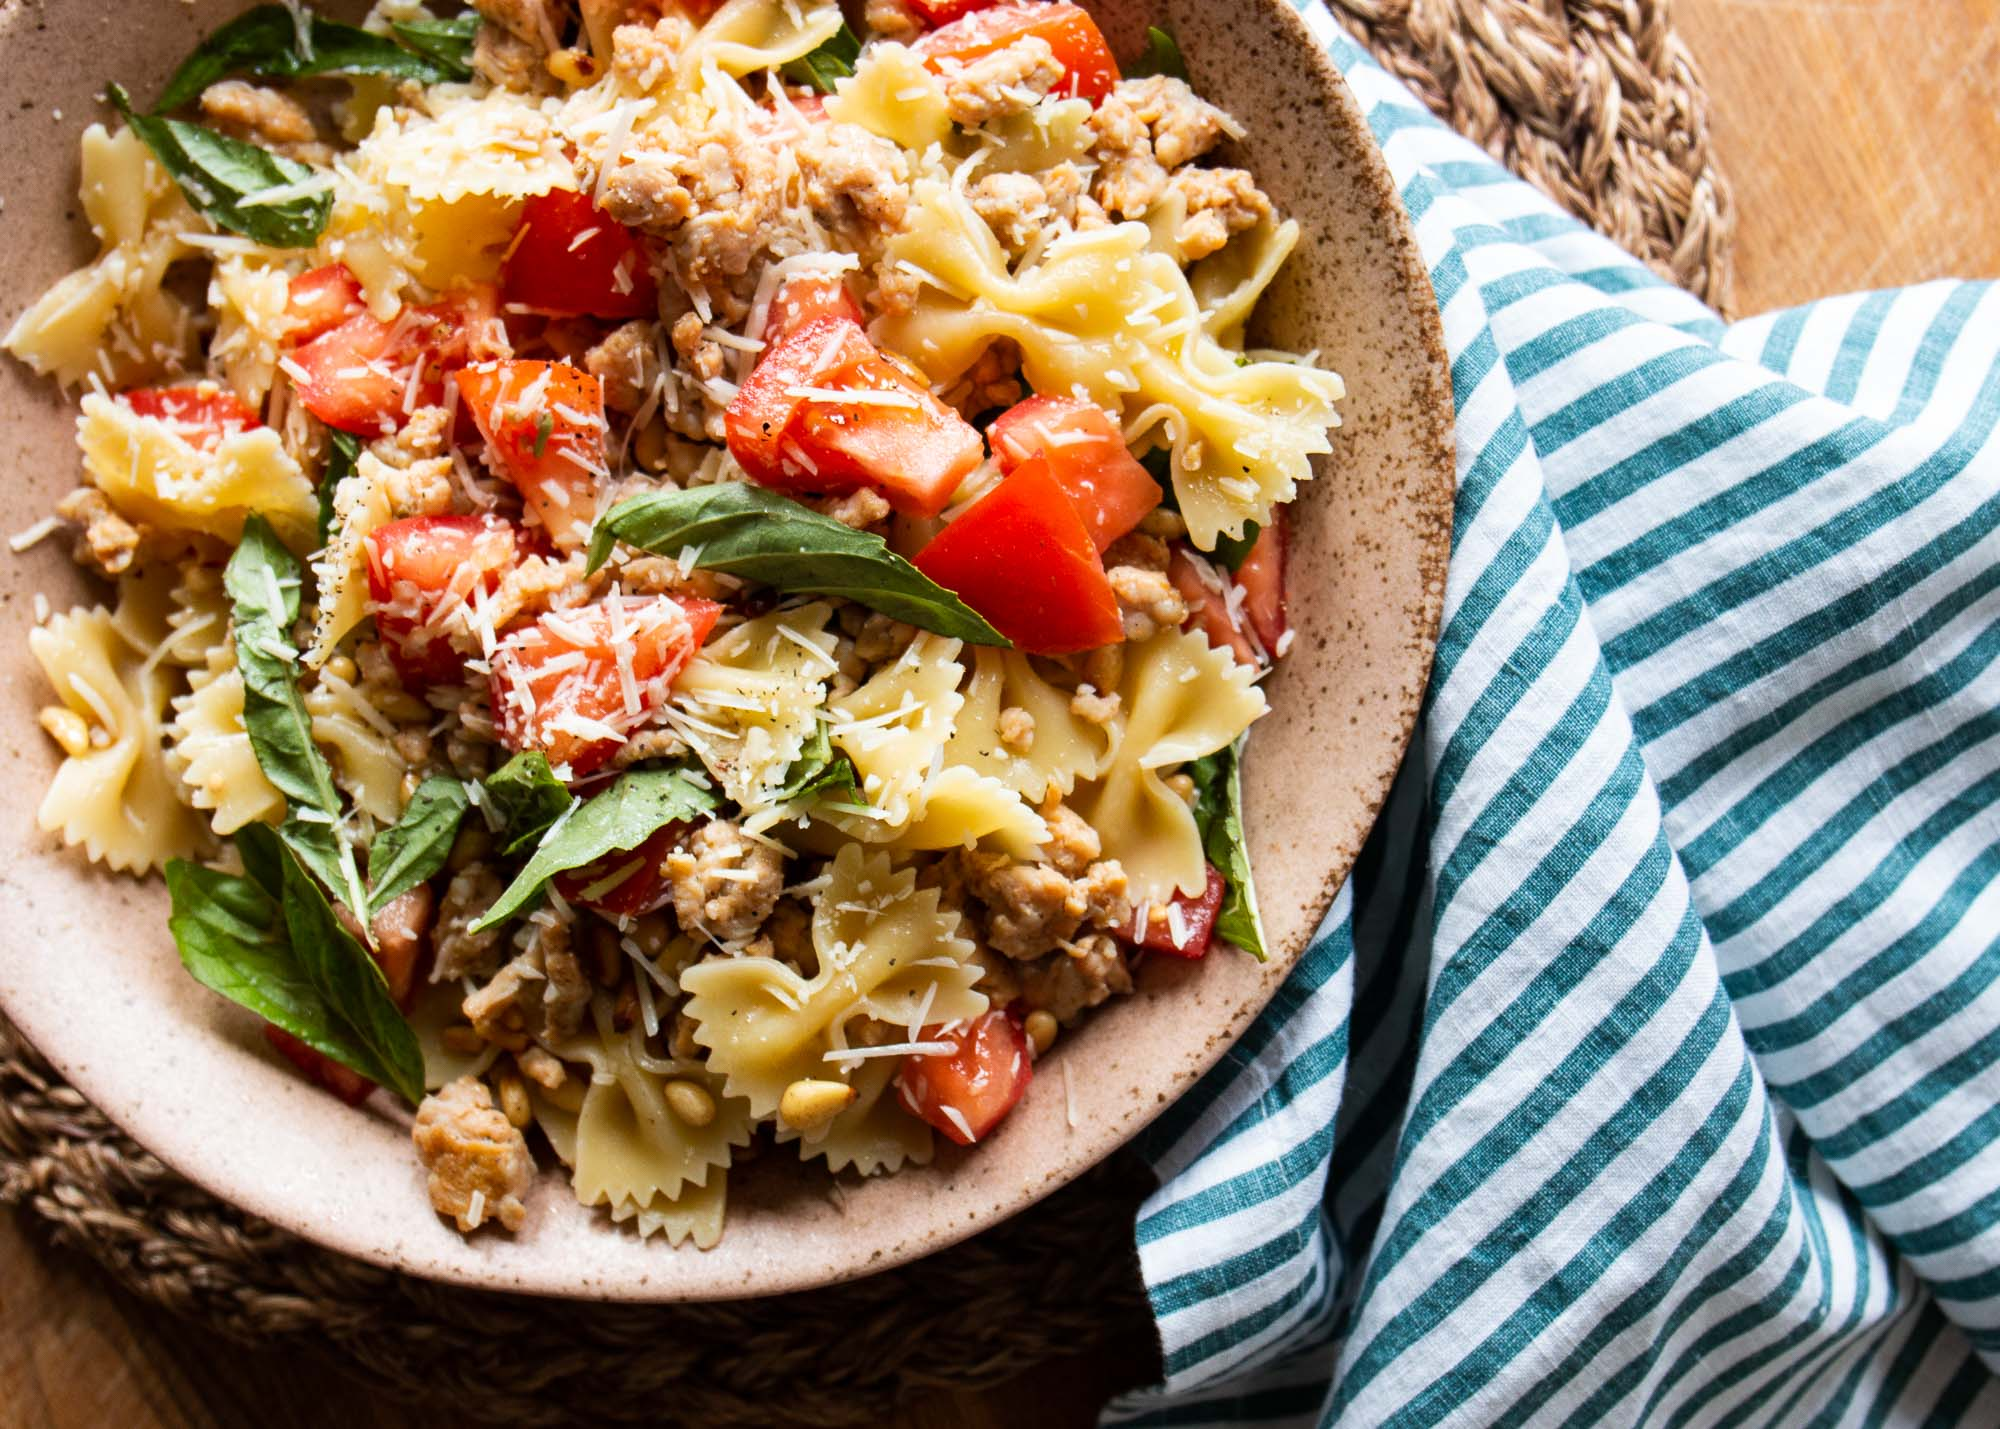 Toasted pine nuts combine with crumbled chorizo sausage, fresh basil, chopped tomatoes, and Parmesan cheese. Toss this savory mixture with hot farfalle pasta, and dress it up with oil and vinegar.